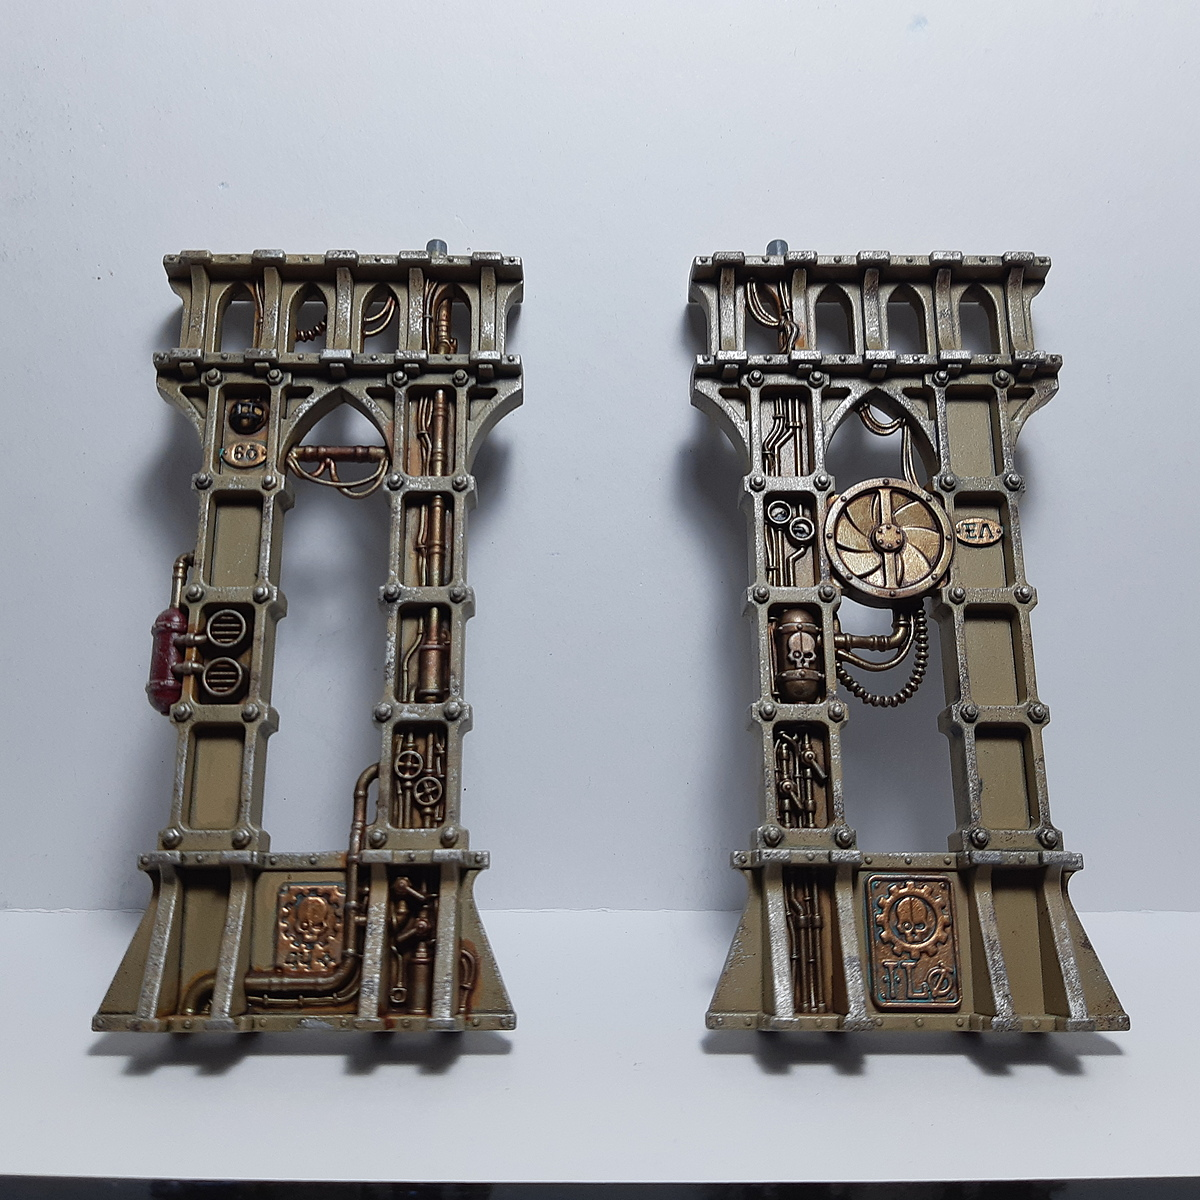 Sector Mechanicus Support Columns